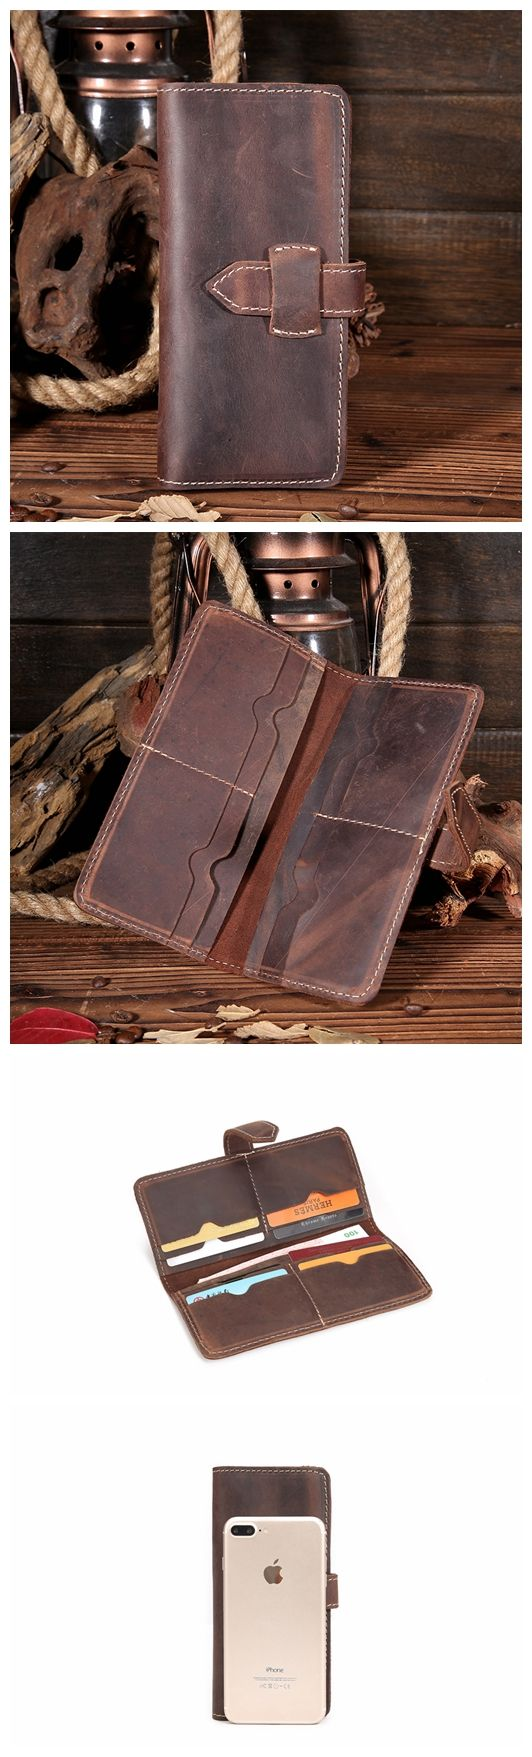 LEATHER WALLET, MEN WALLET, LEATHER HOLDER, PHONE WALLET JX004